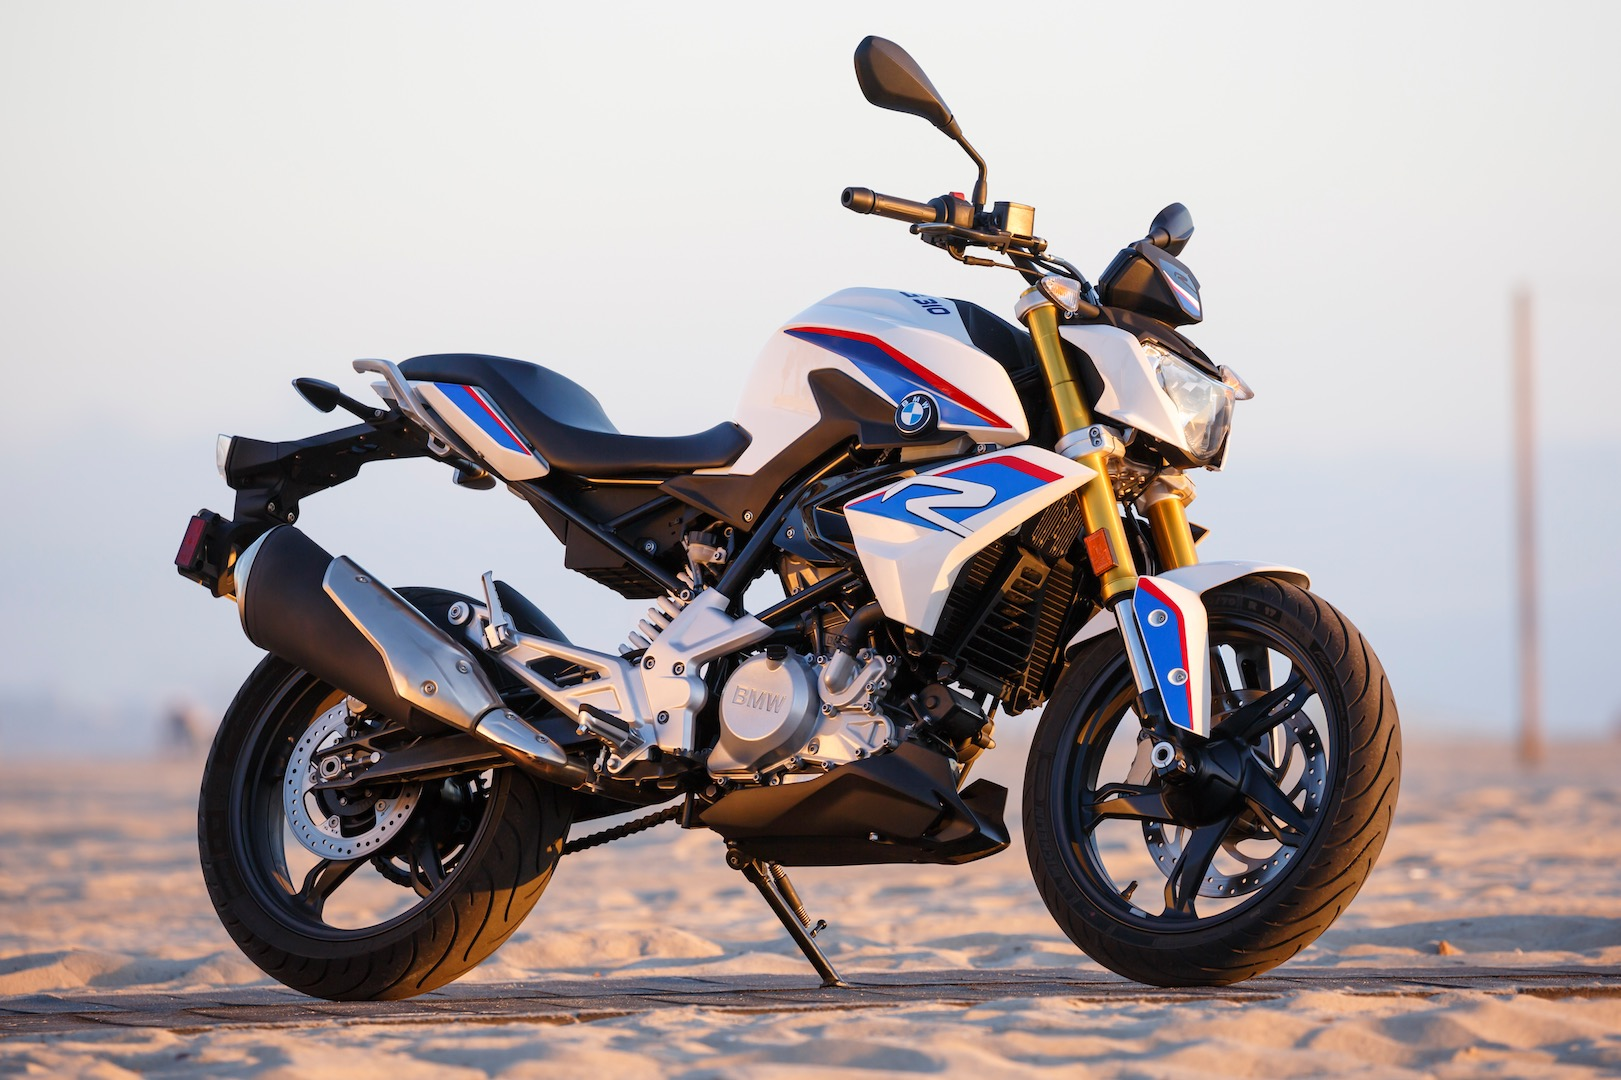 BMW levels up with its one of a kind G310R